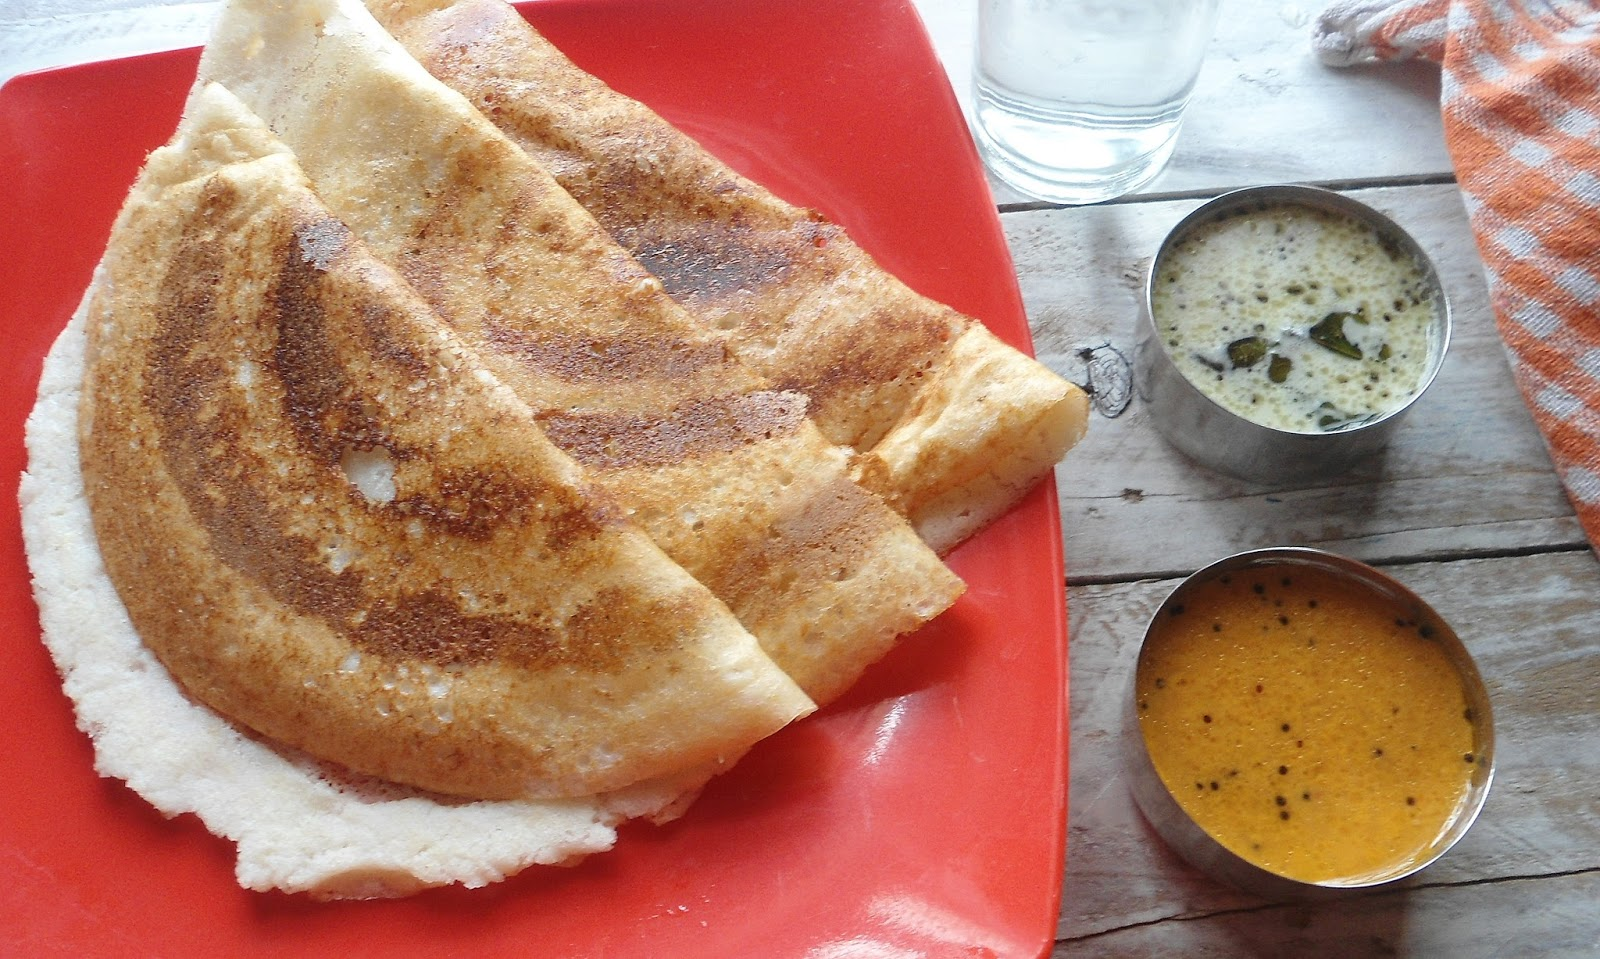 Babi 's Recipes - Easy South Indian Recipes with step by